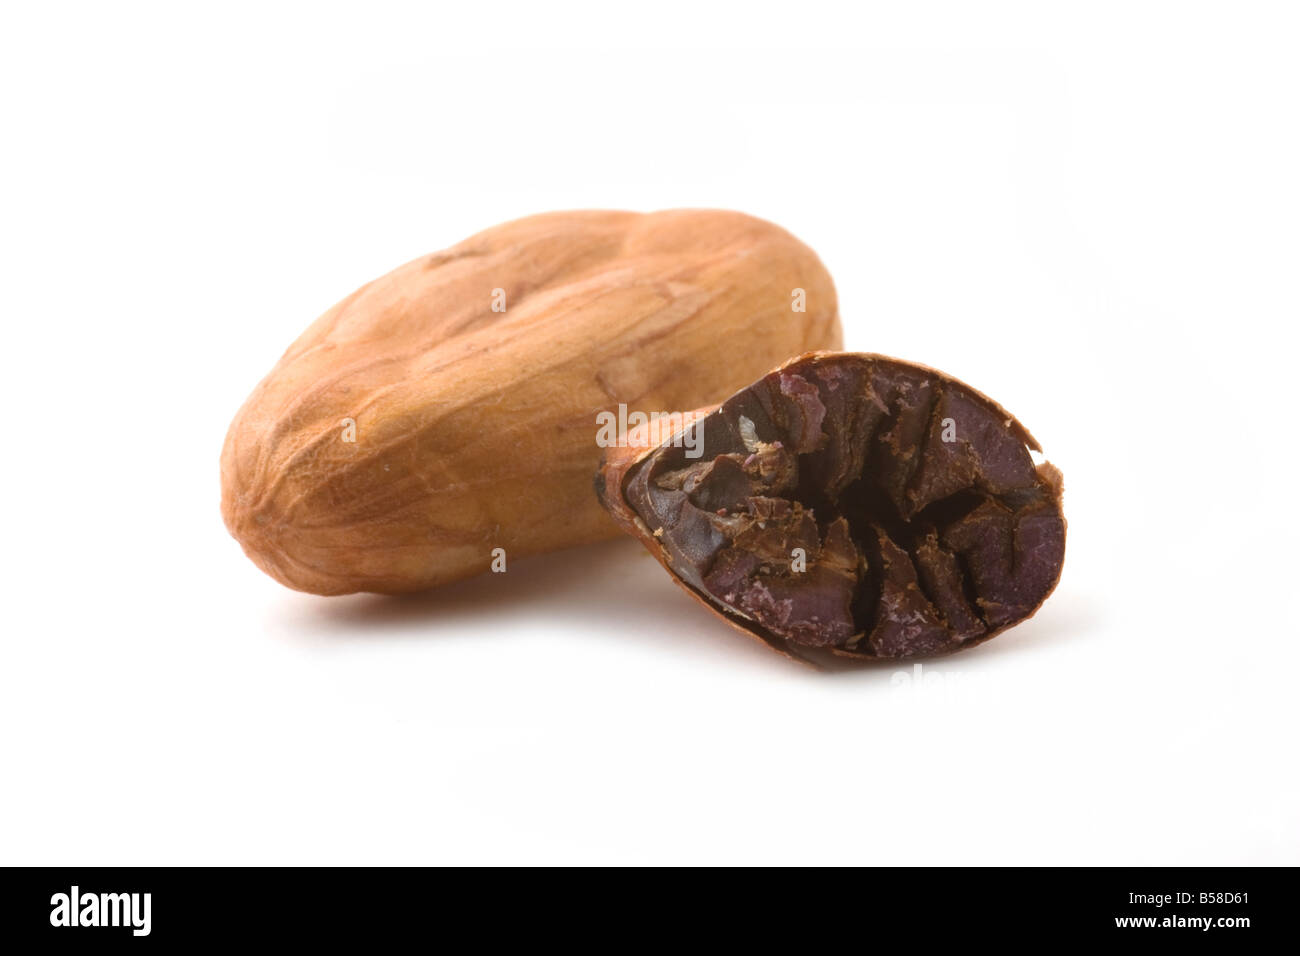 Cacao Beans on a White Background. One is split in half to show contents. - Stock Image